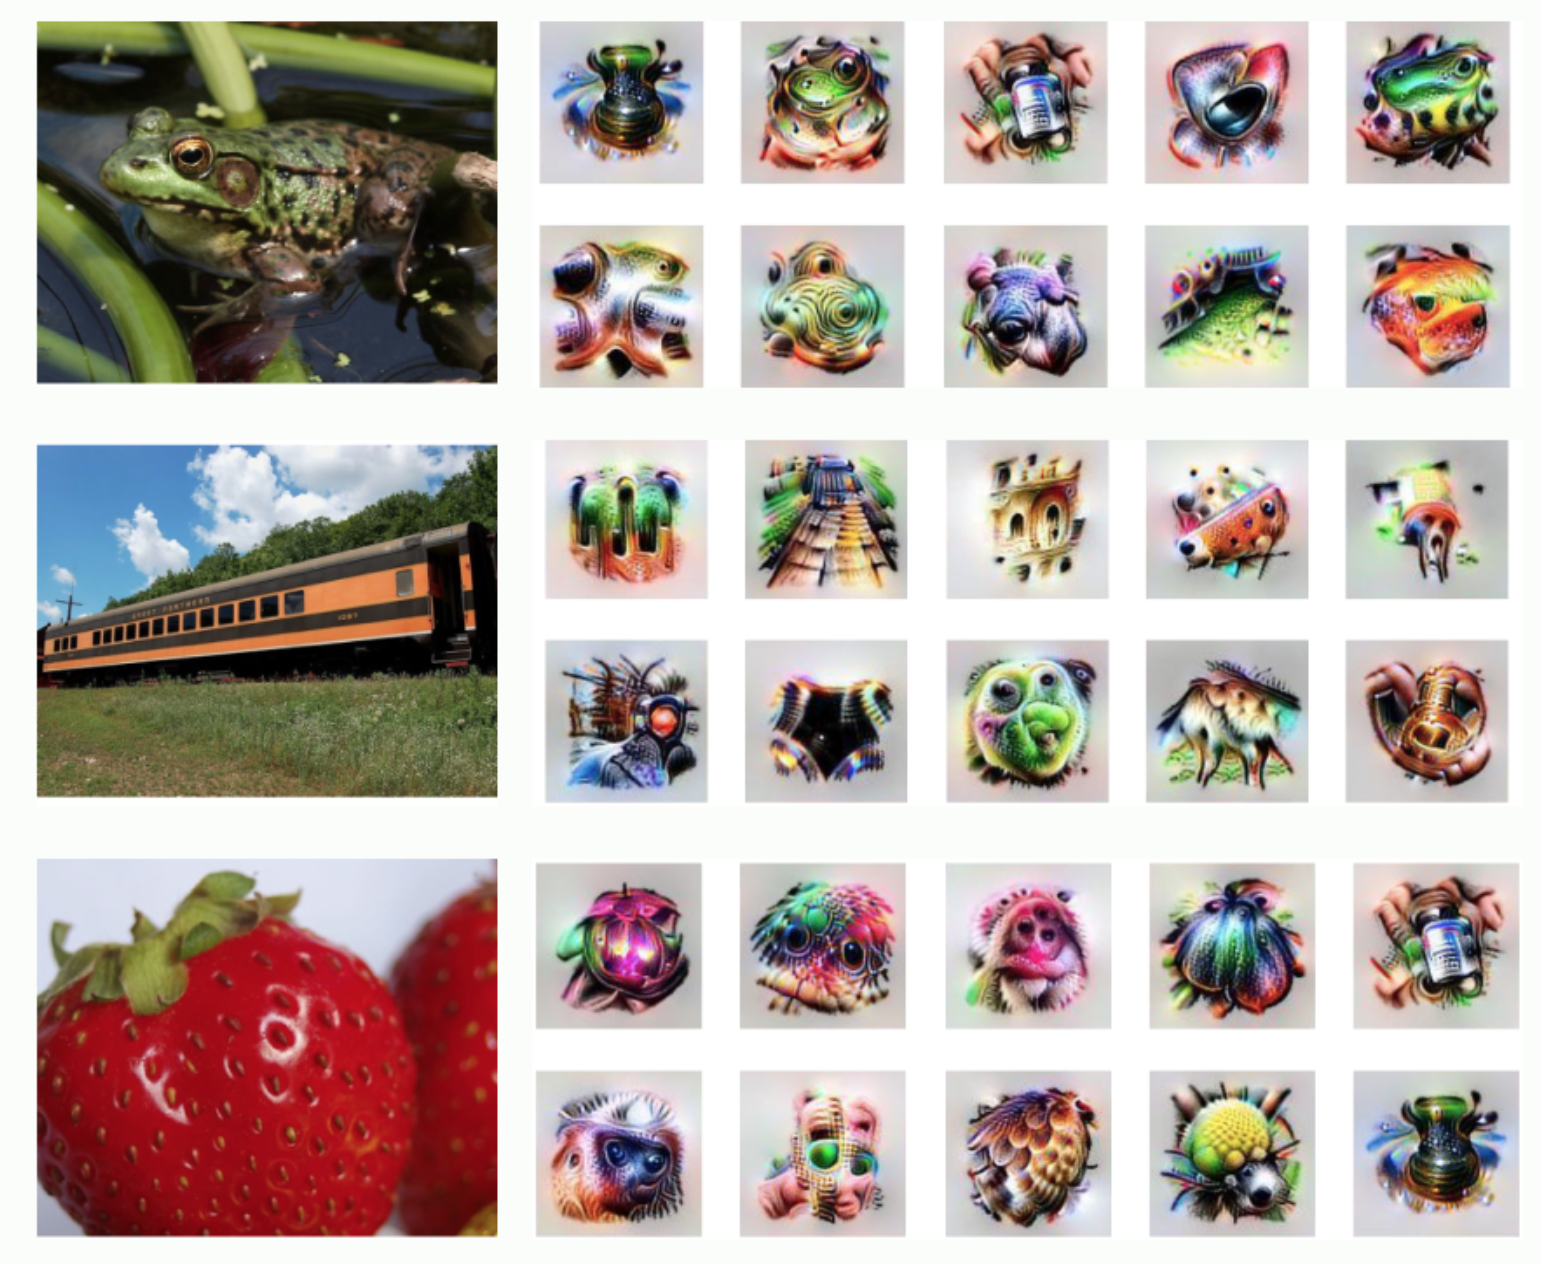 A frog, train, and strawberry with AI produced images that describe features, textures, and patterns for each